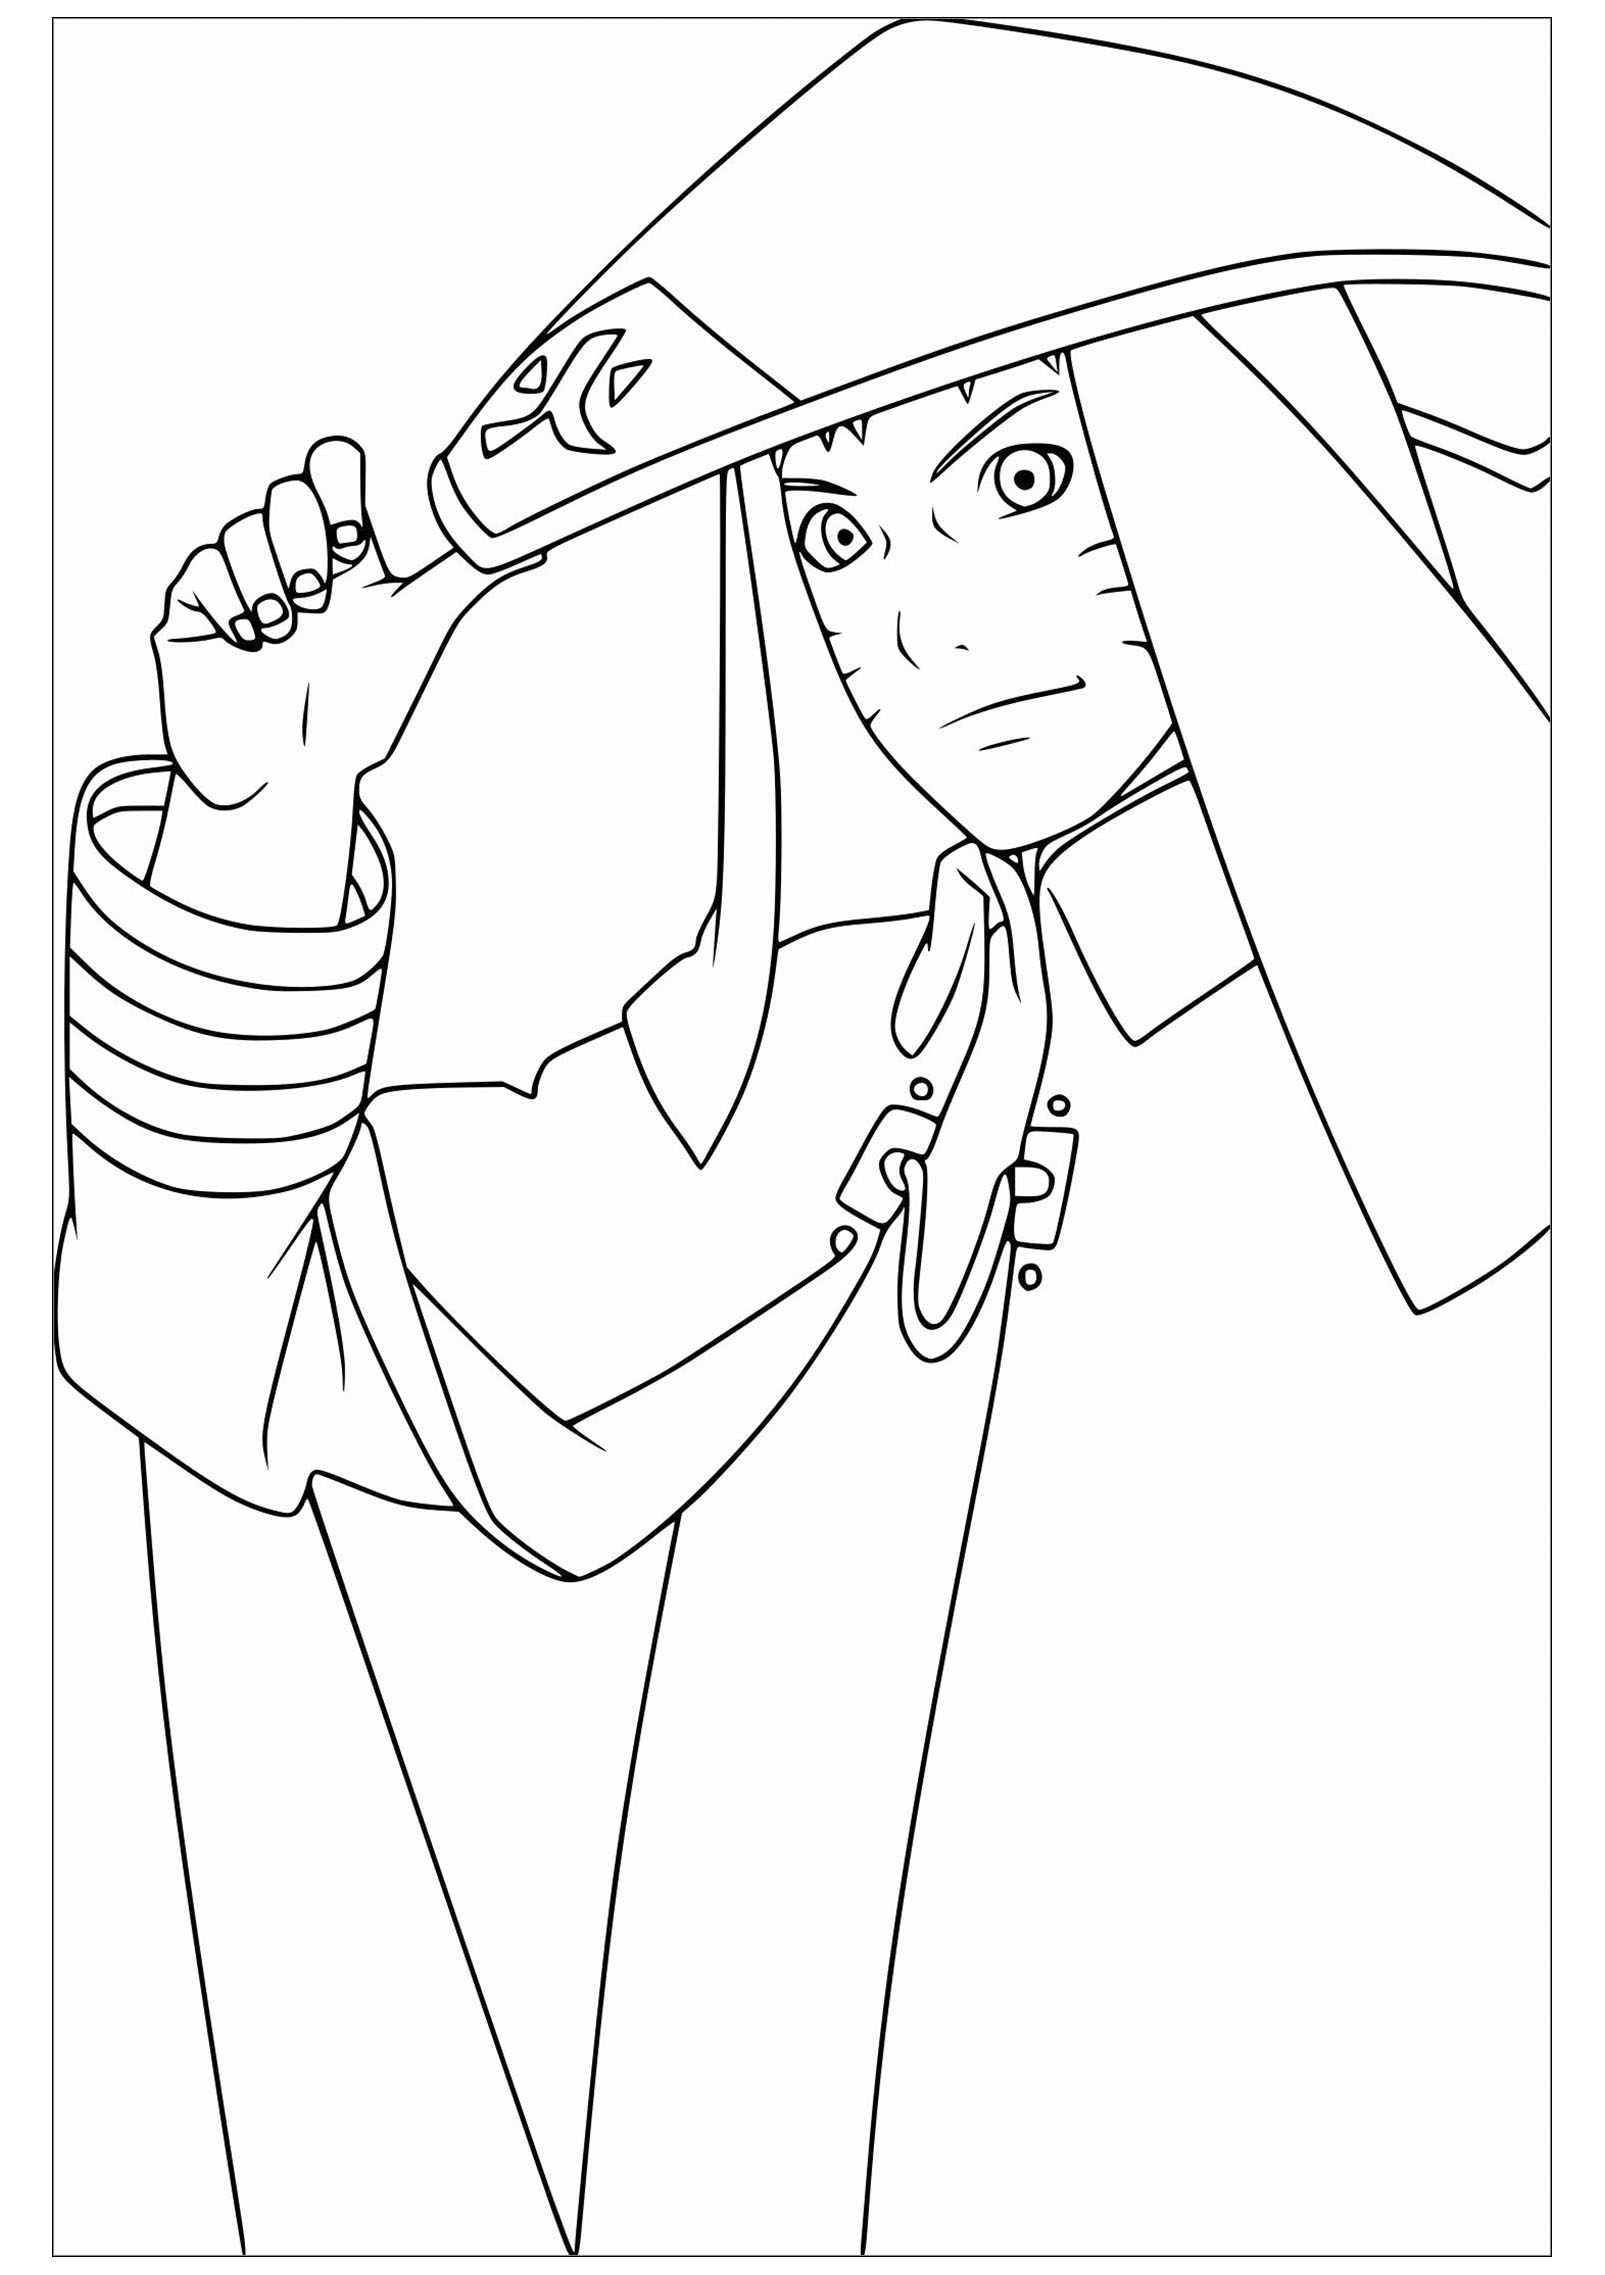 coloring pages of naruto naruto to print for free naruto kids coloring pages of naruto coloring pages